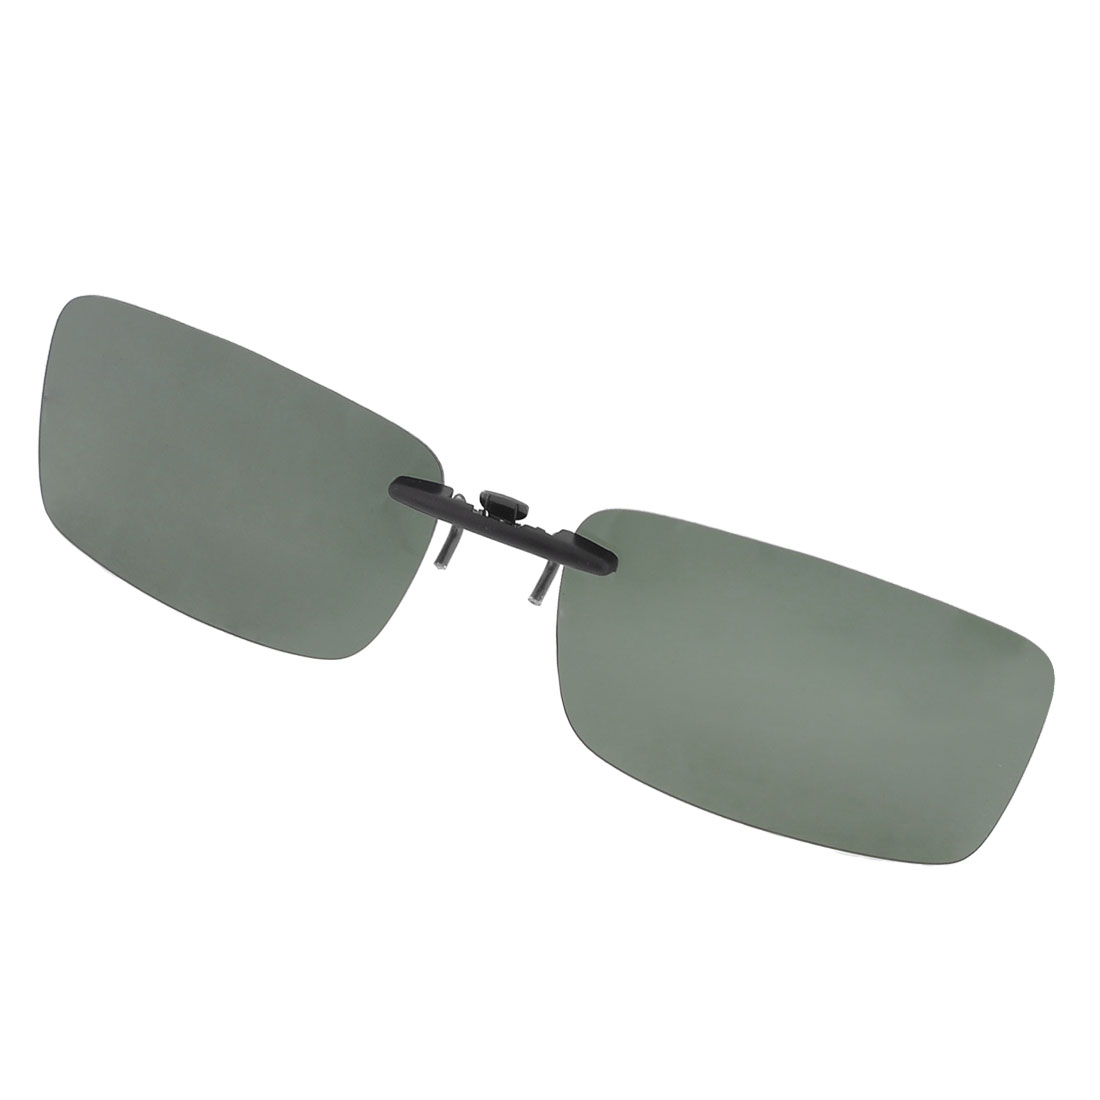 Driving Fishing Outdoor Travelling Polarized Lens Clip-on Sunglasses Eyeglasses